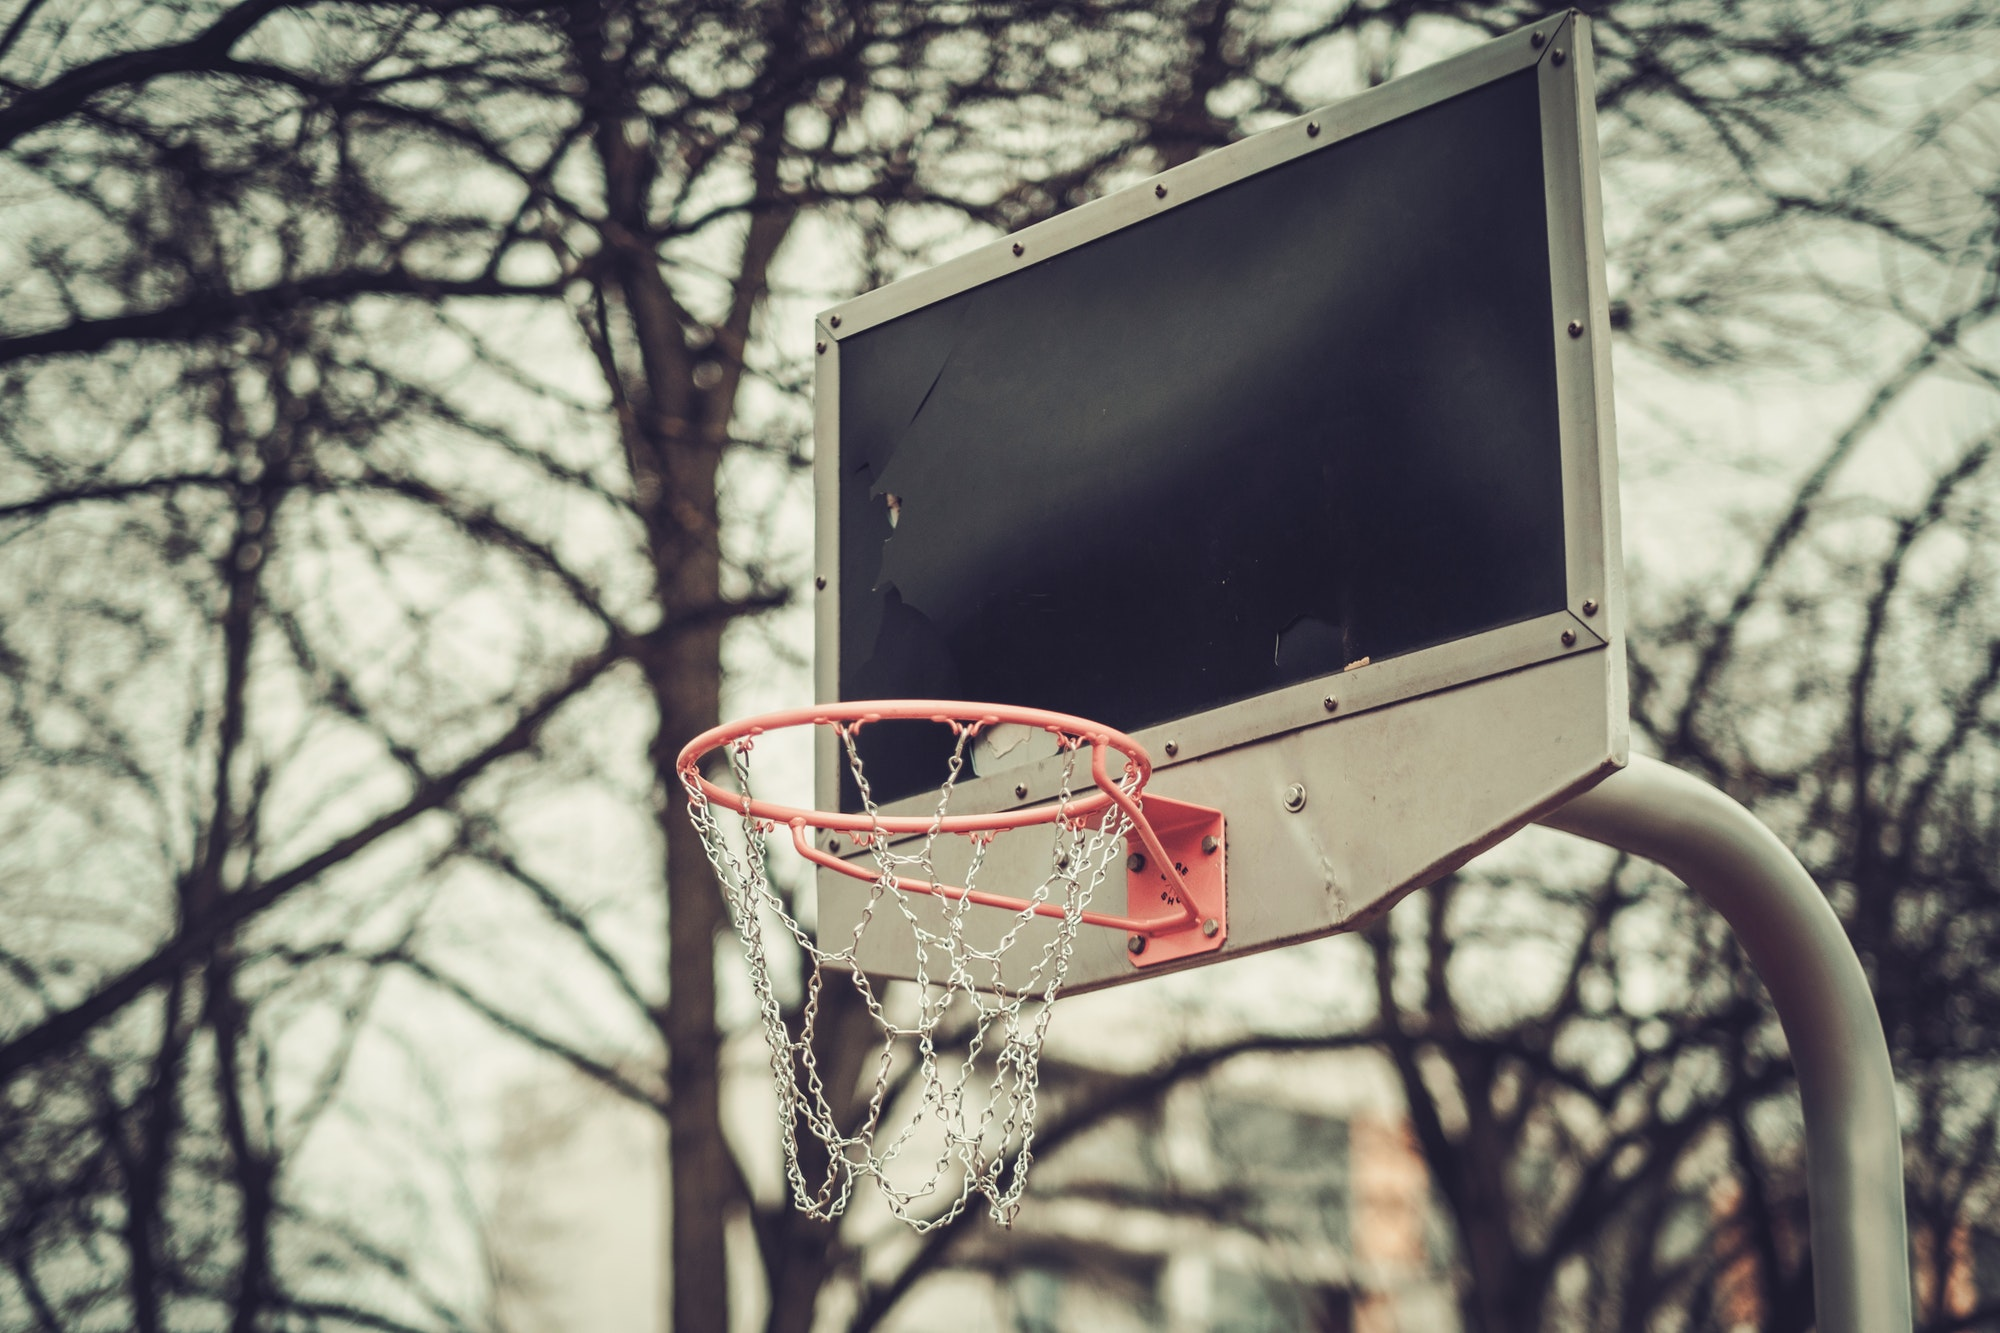 Basketball shiled outdoors